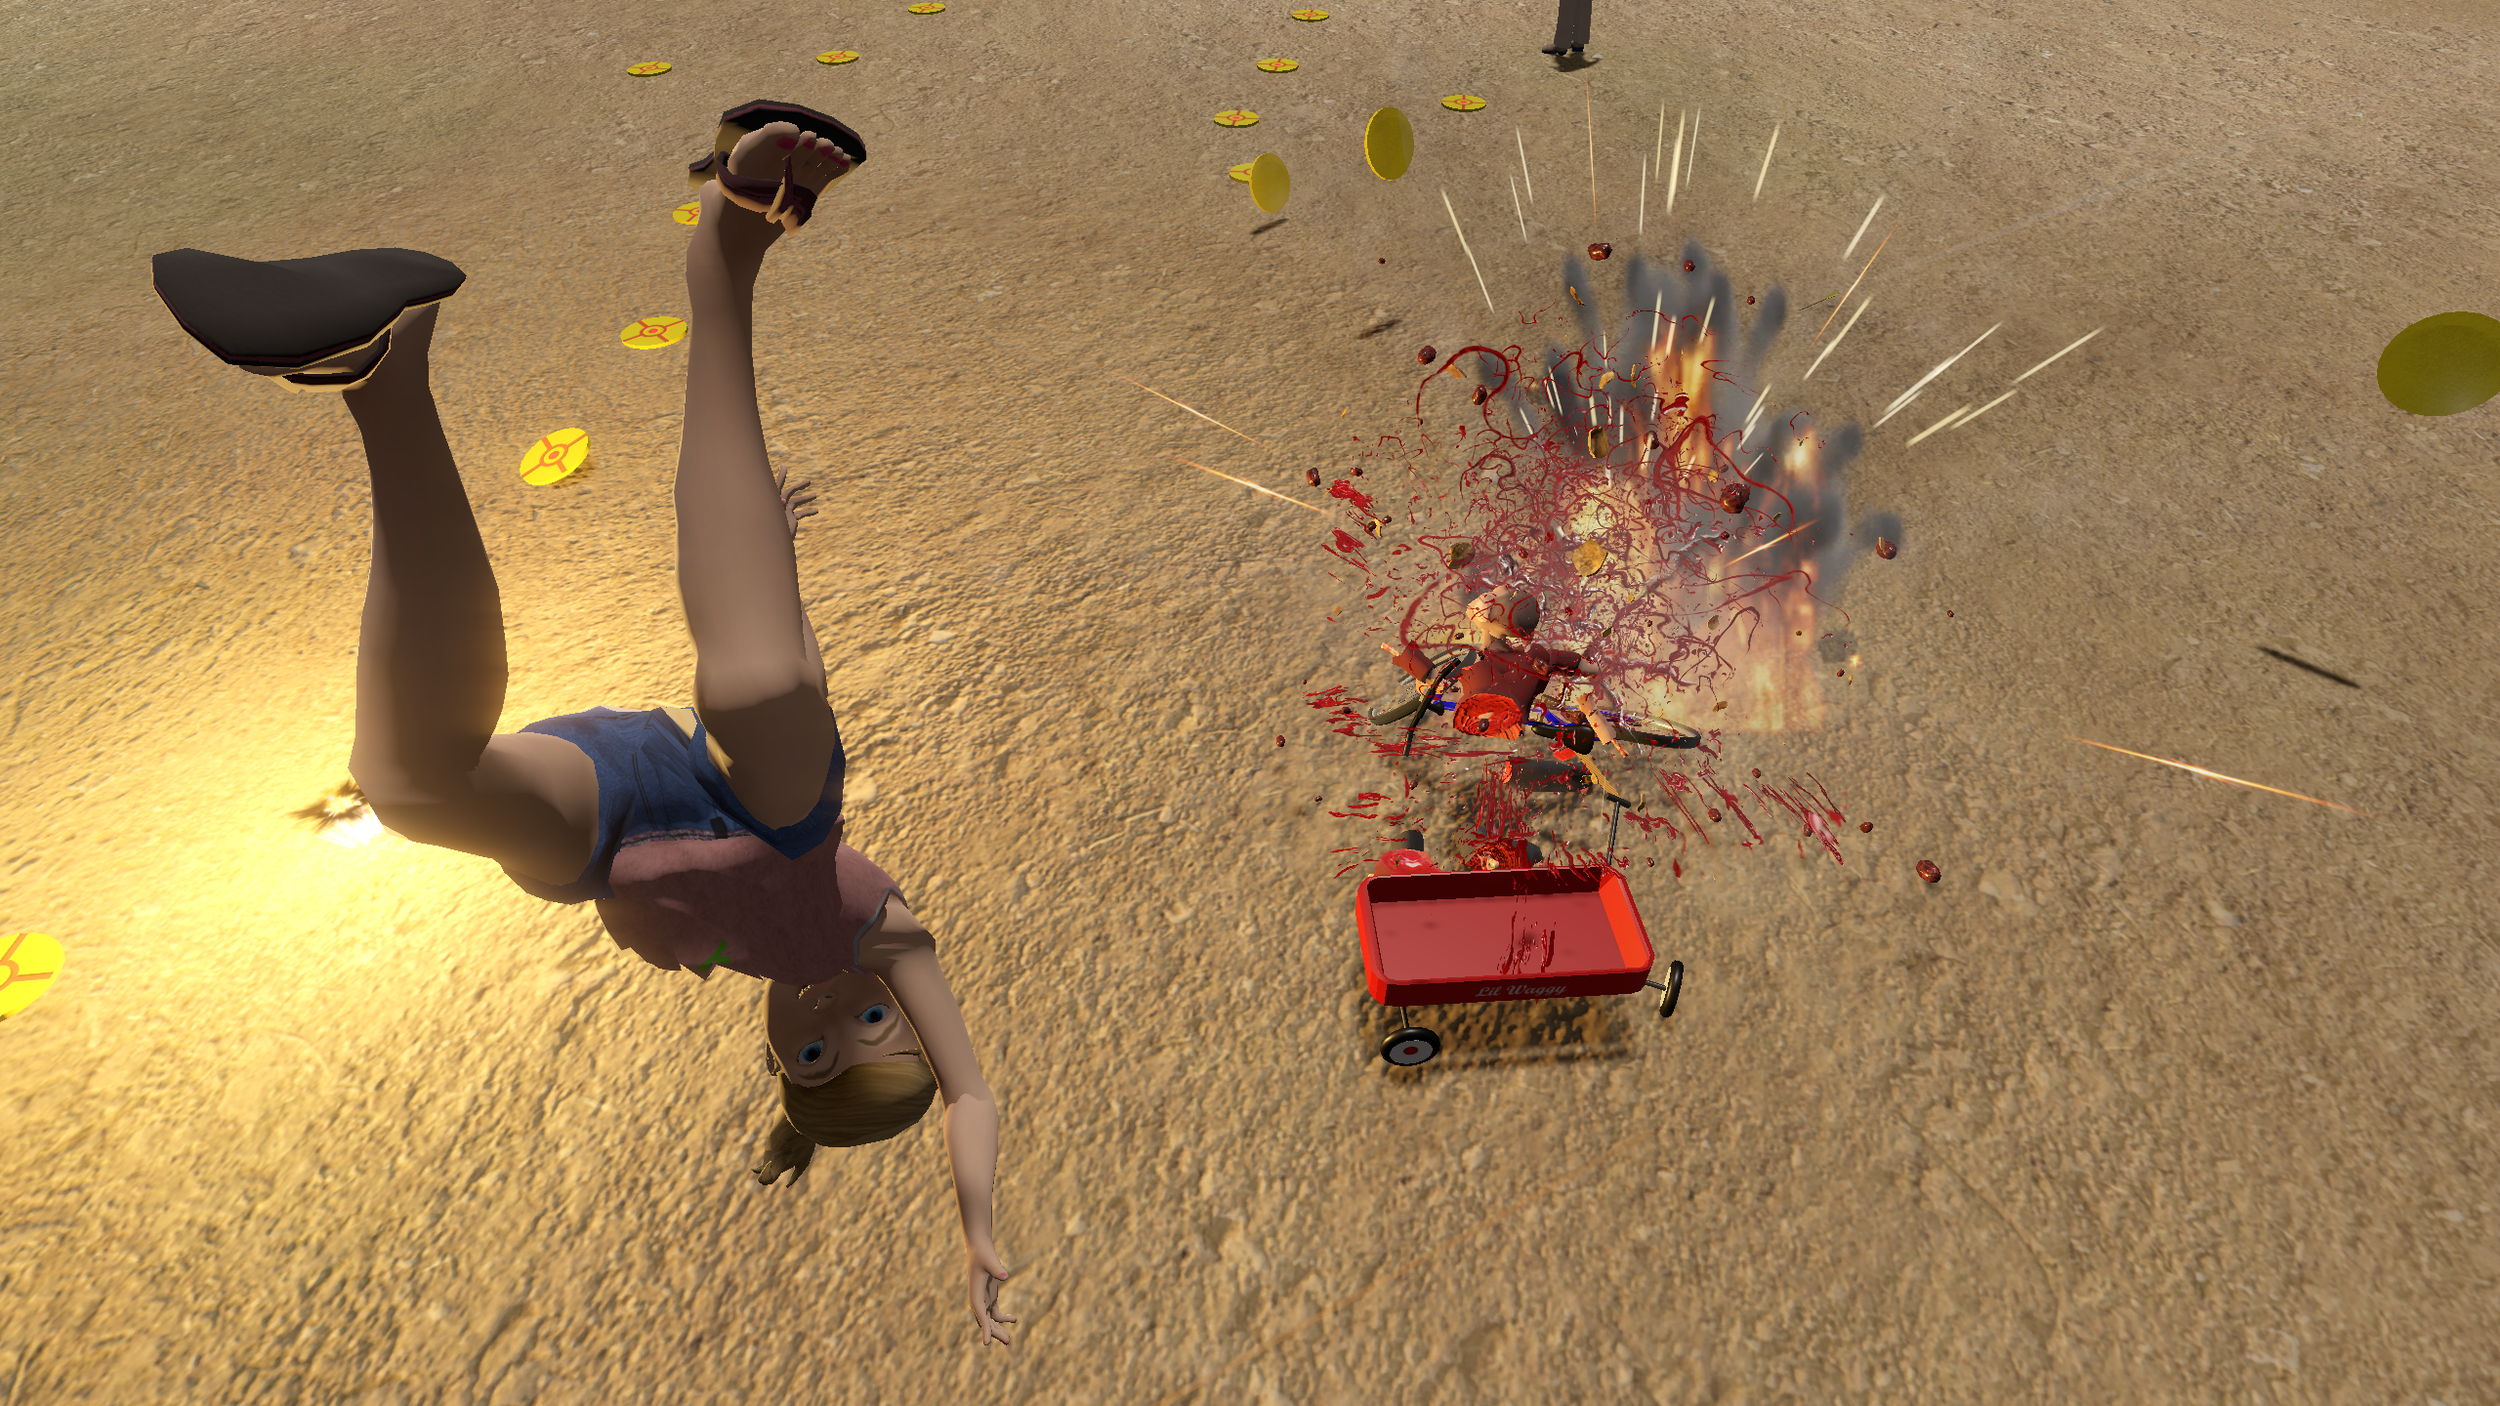 Jack's mom always said to never play with explosives